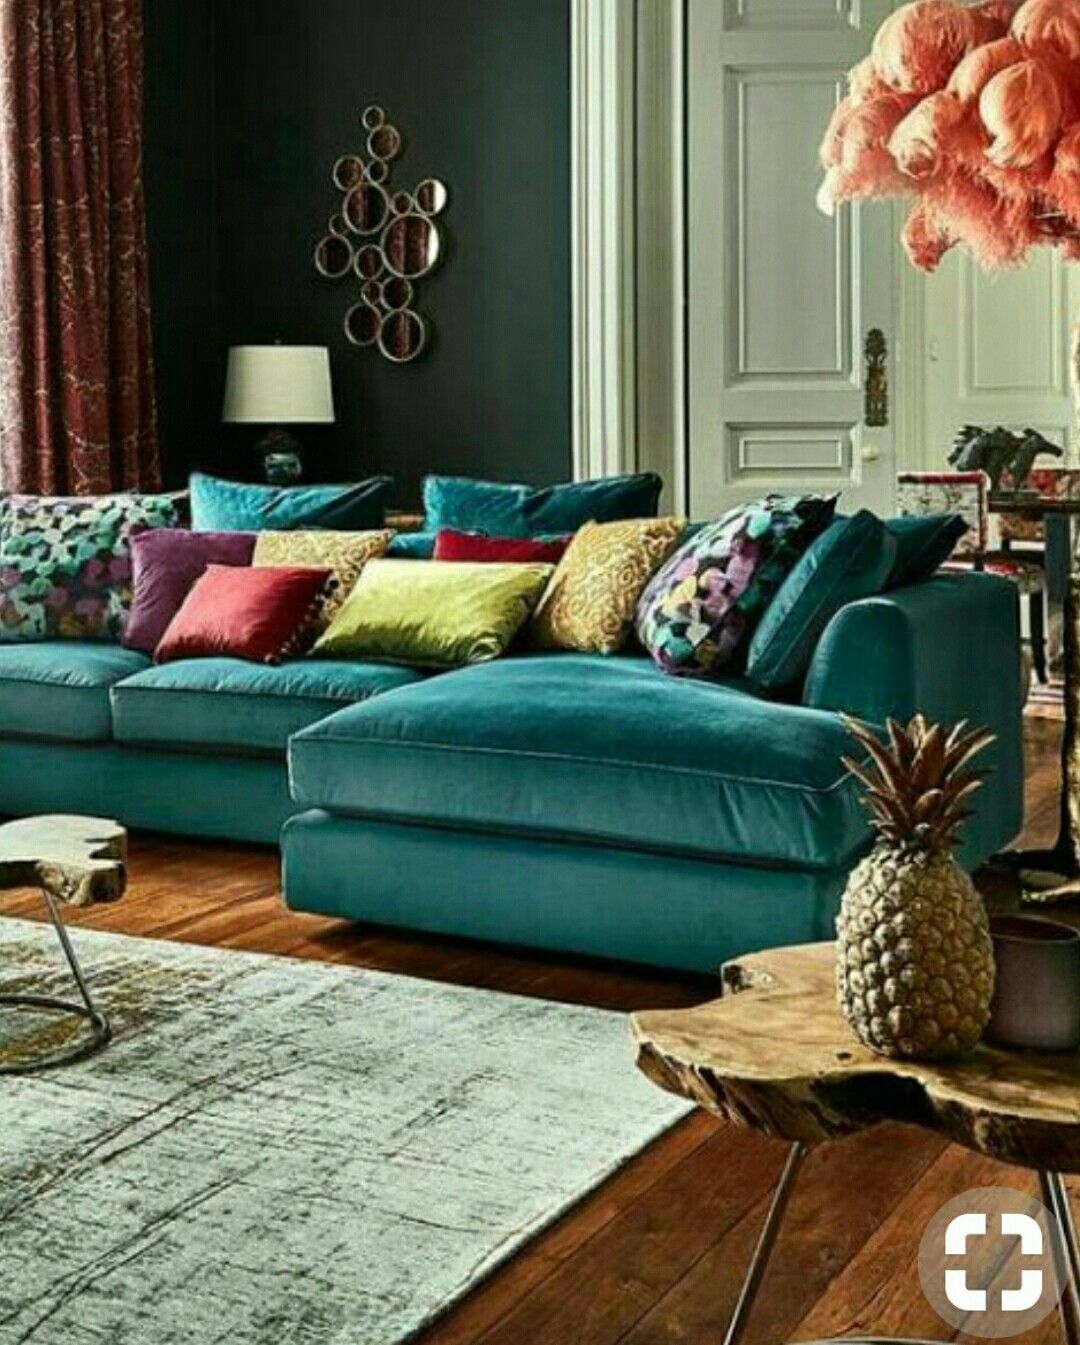 Love The Teal Velvet Sectional Couch This Has A Upscale Boho Feel Great Use Of Colors Harring Corner Sofa Living Room Modern Sofa Designs Living Room Color